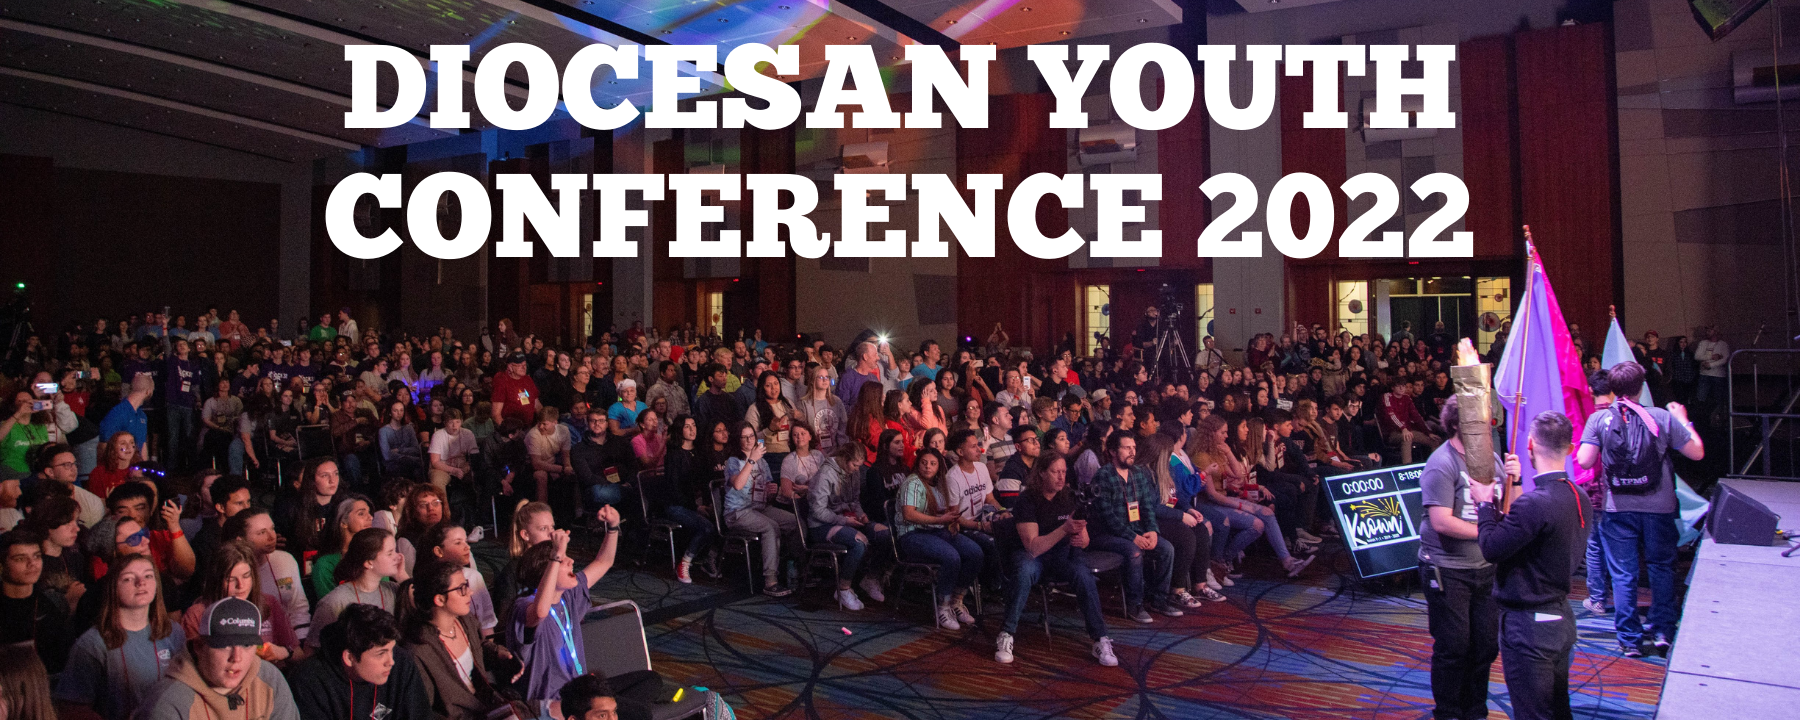 Diocesan Youth Conference 2022